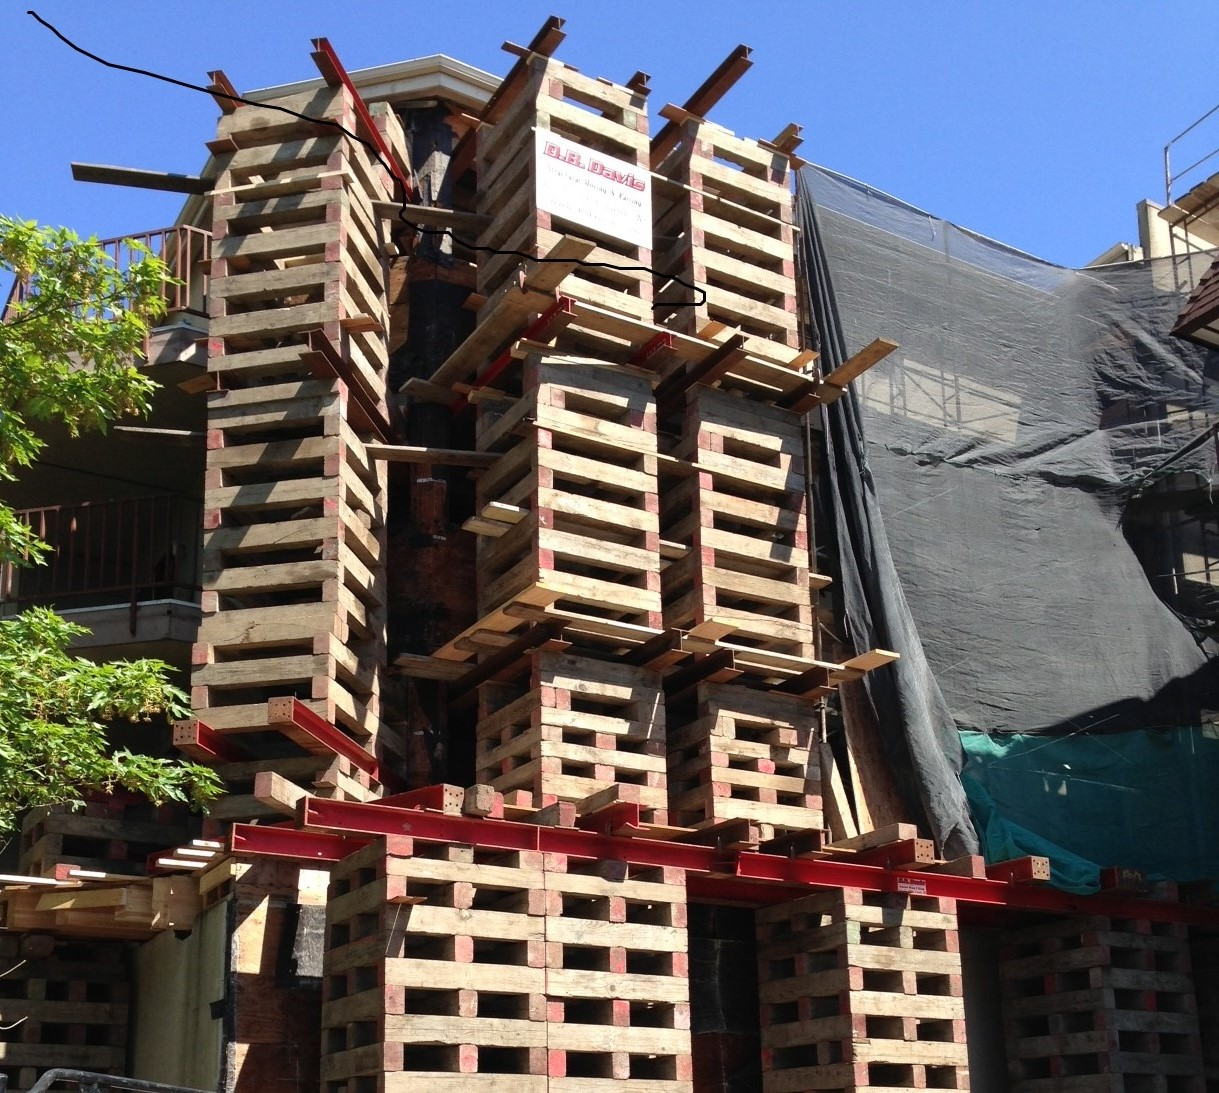 5th Ave NE Hilcrest Apartment Rebuild performed by BSC. Major structural members had rotted through, necessitating careful phasing, shoring, and rebuilding while cooperating with resident tenants.